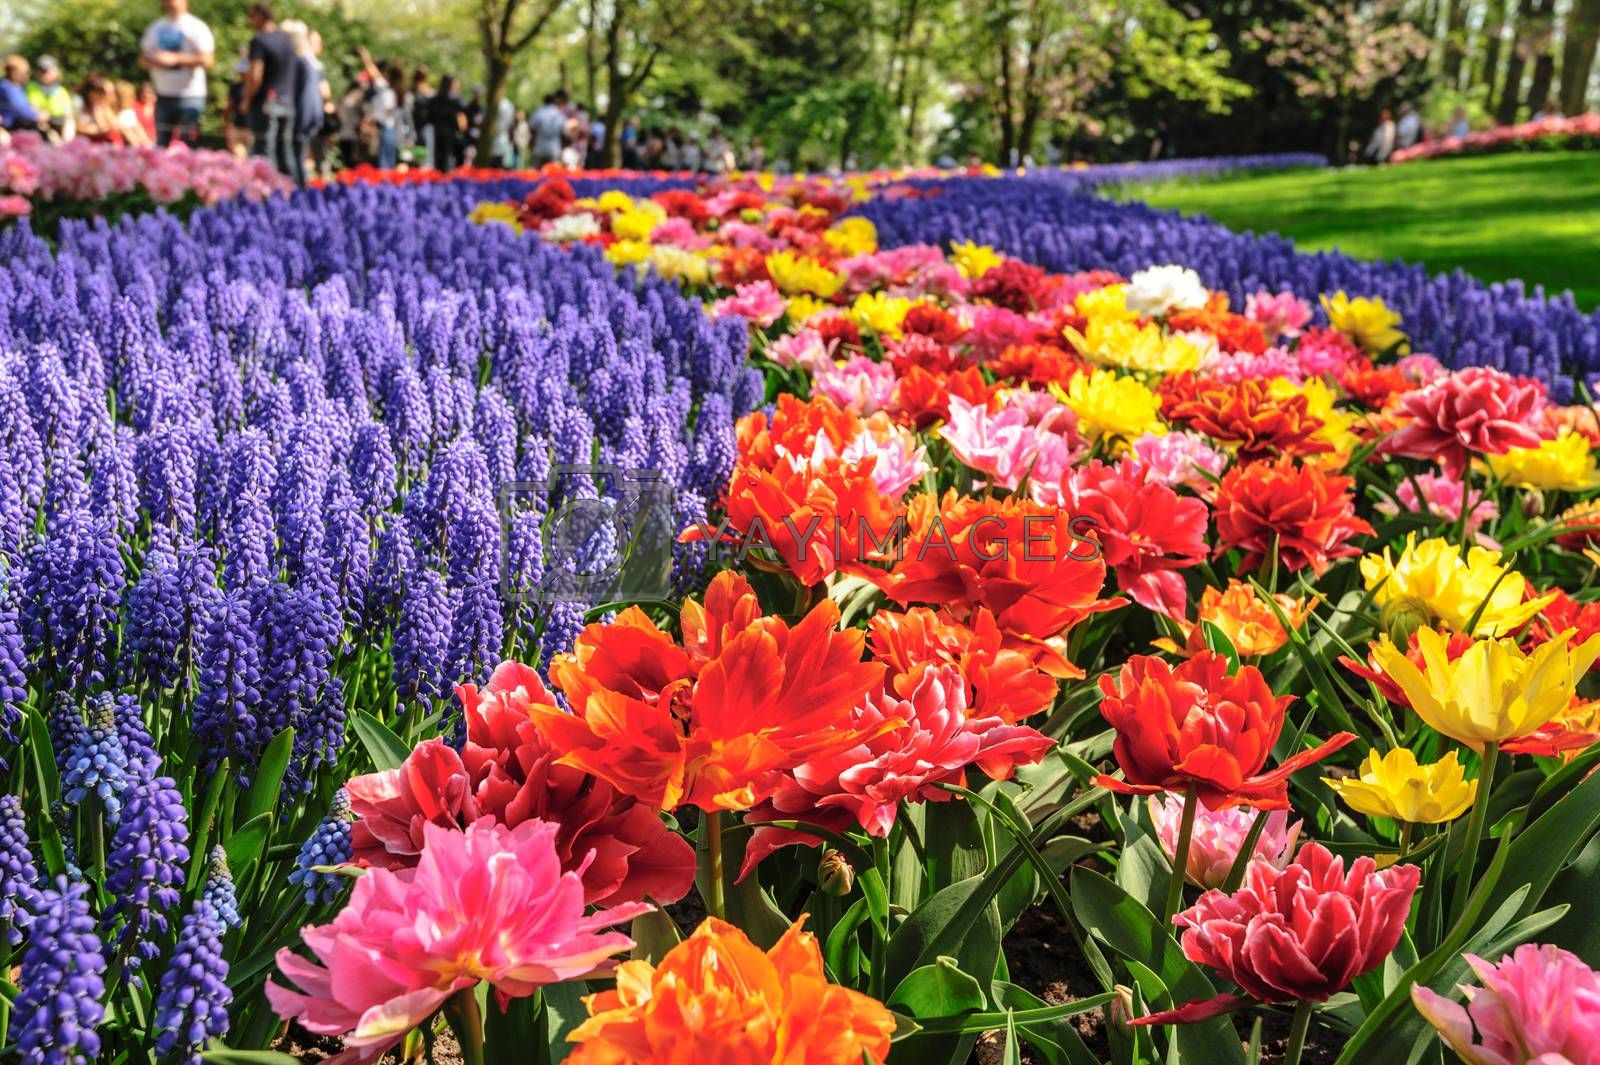 Large multicolored tulips flowerbed in Netherlands, unrecognizable people at background